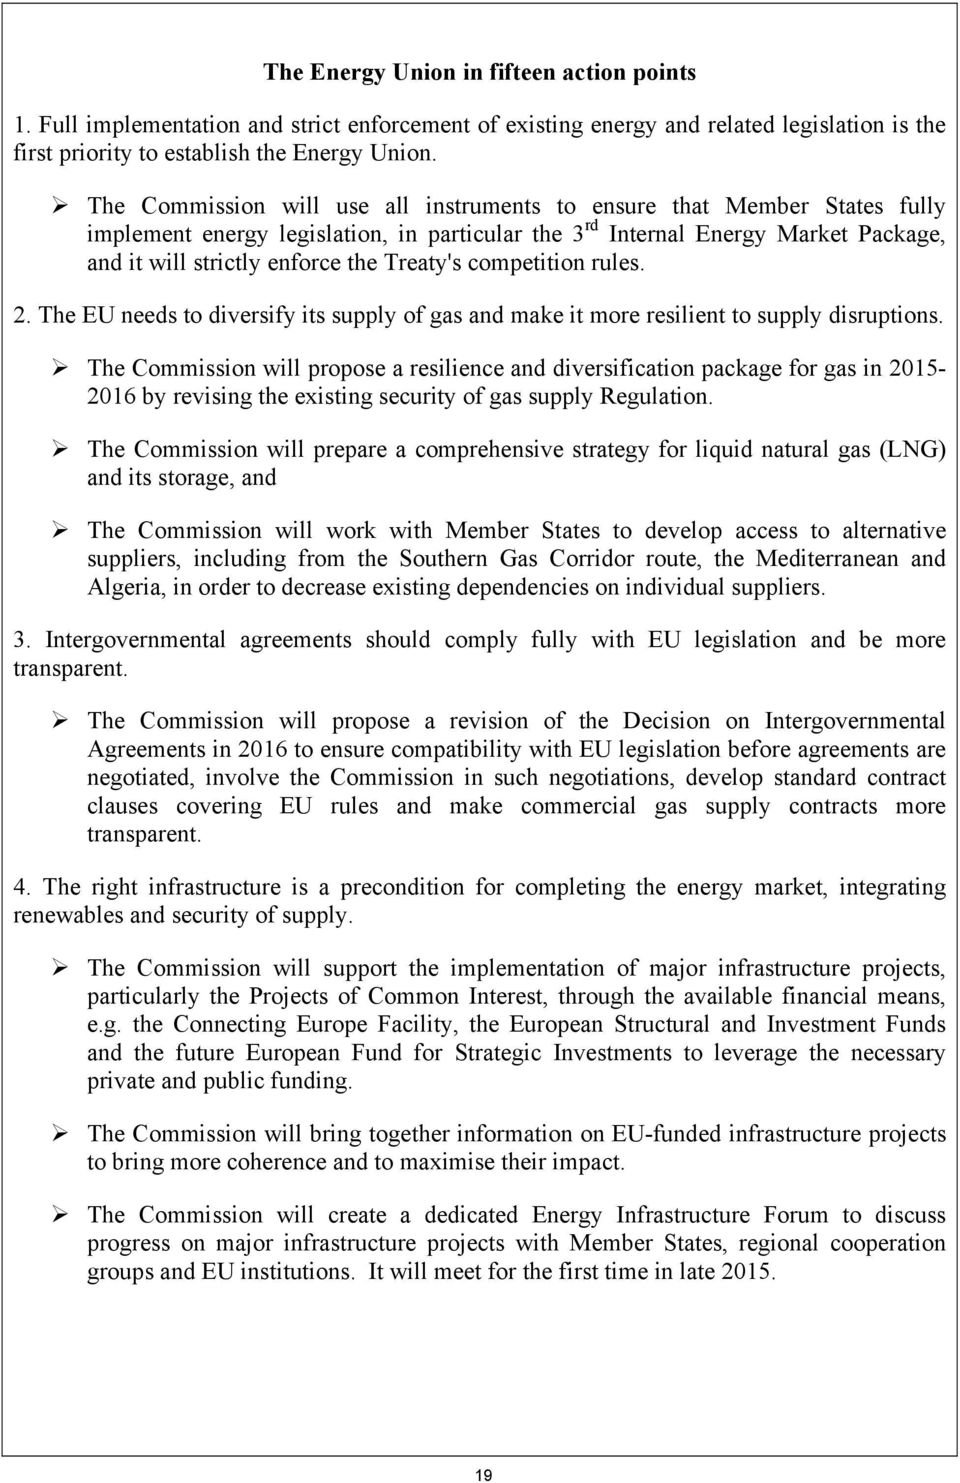 Treaty's competition rules. 2. The EU needs to diversify its supply of gas and make it more resilient to supply disruptions.